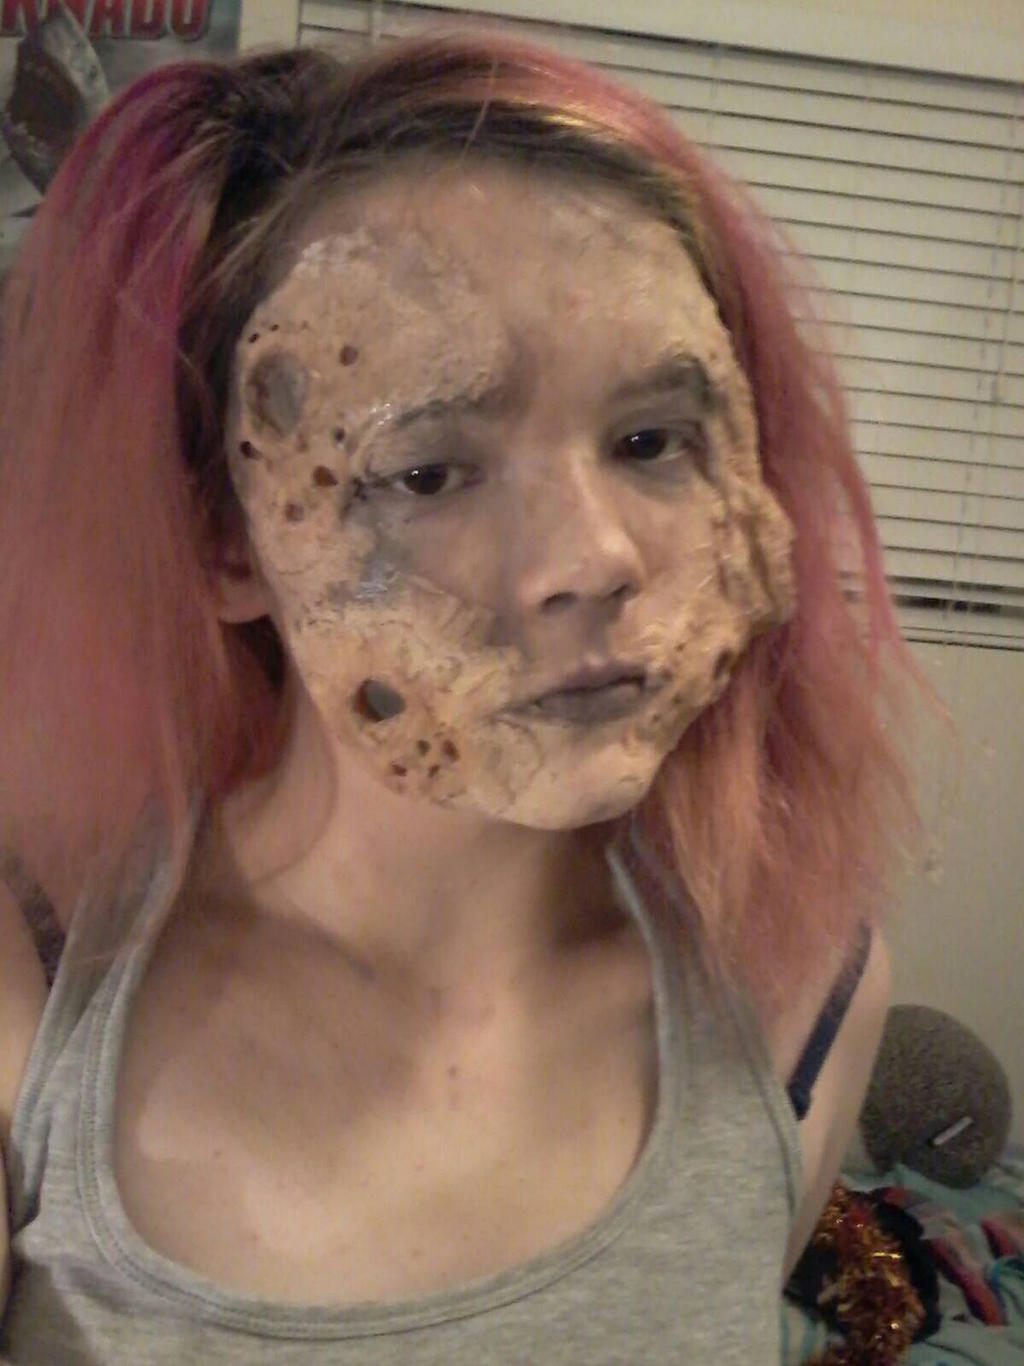 Trypophobia Prothetic Full Face By Eternalscouts On Deviantart